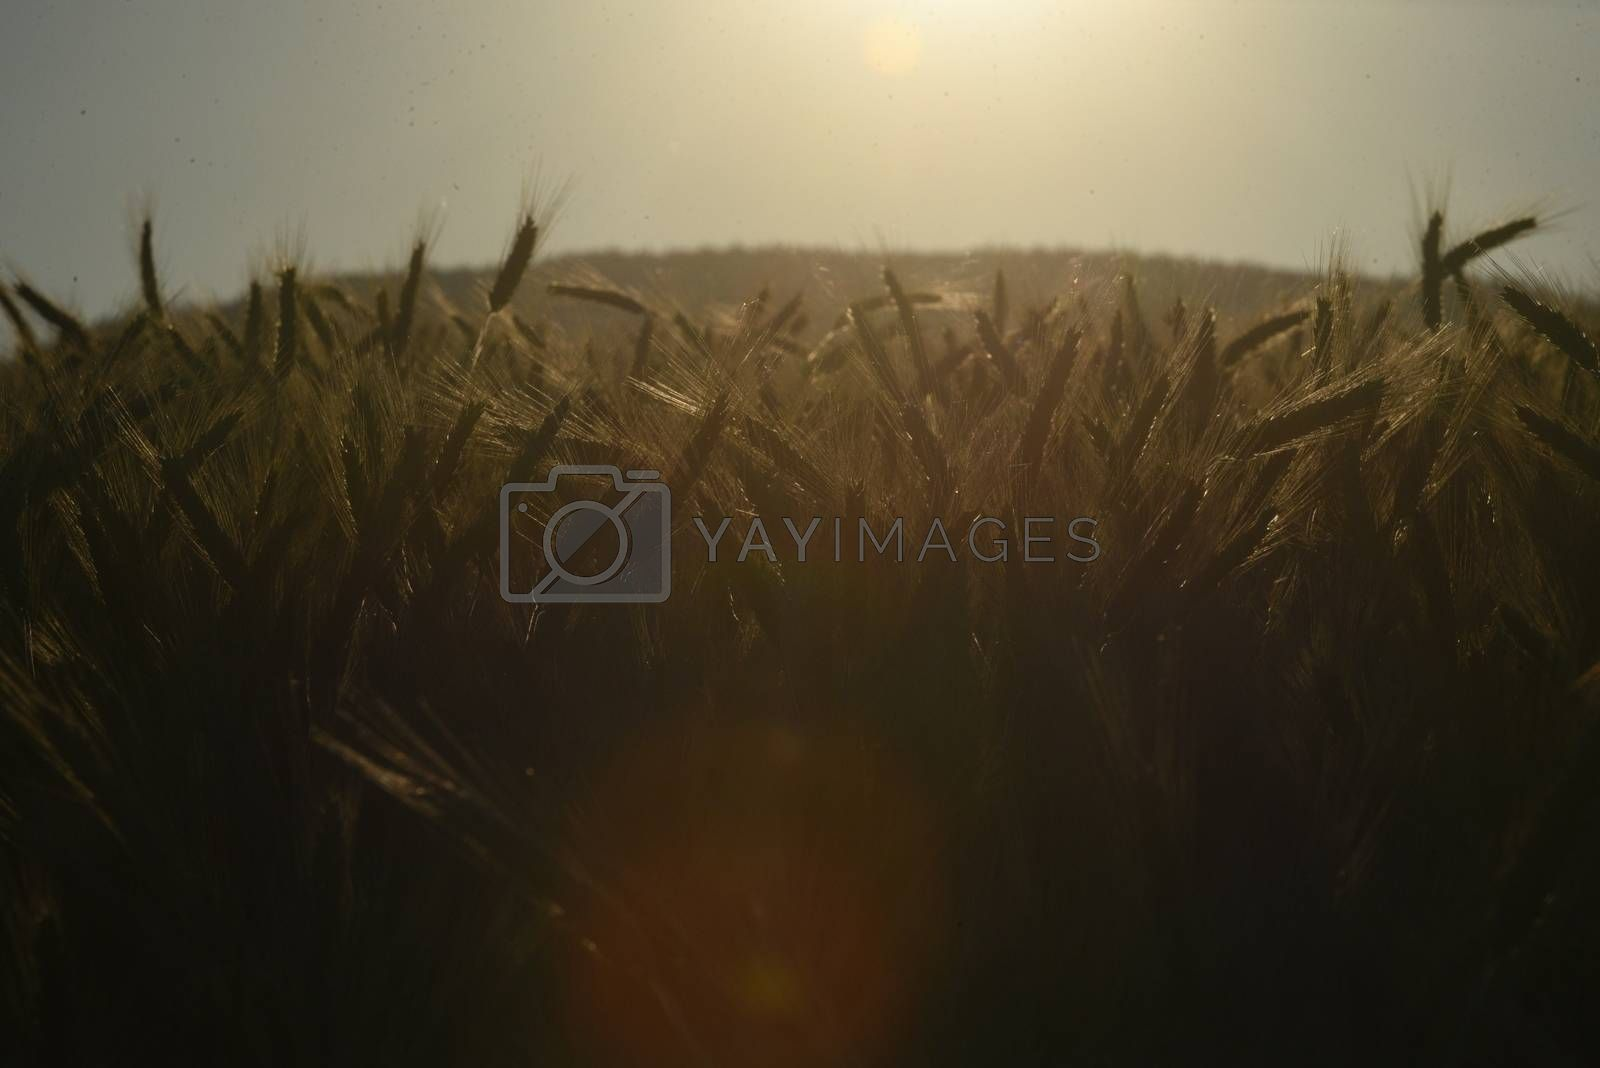 wheat ears or wheat spikes, cereal production and farming in agriculture